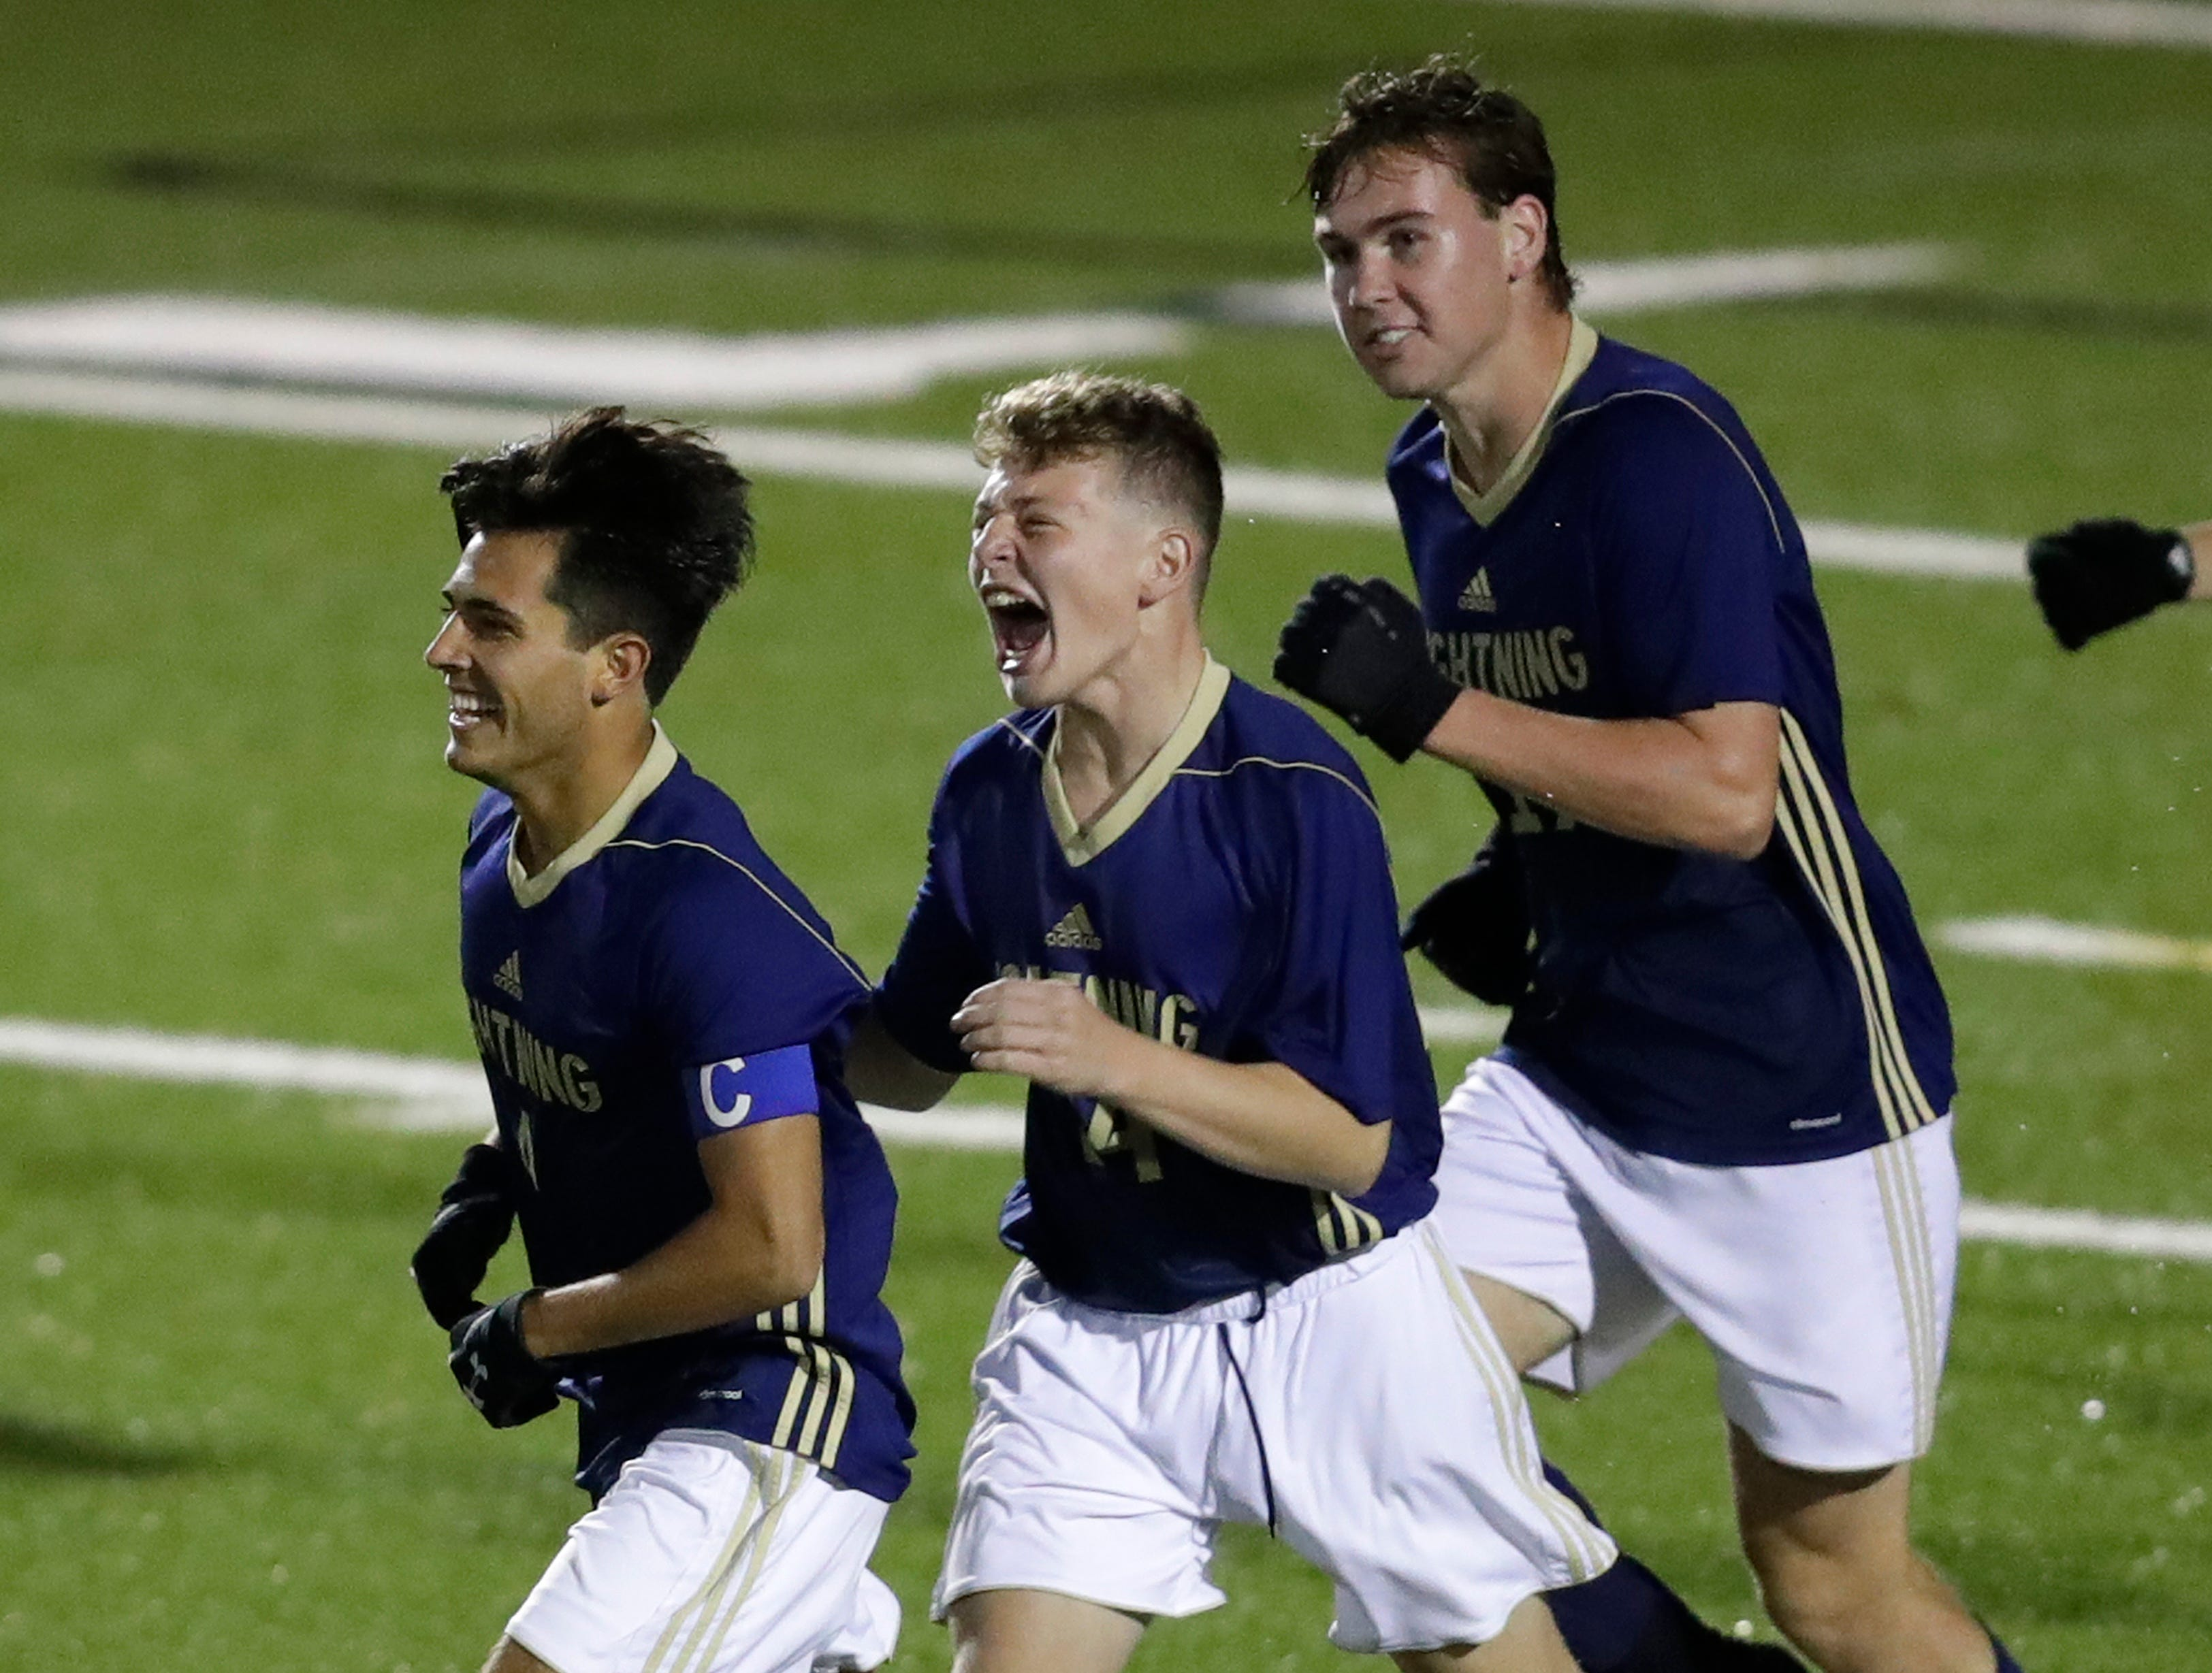 Appleton North High School's Zach Schaefer, left, celebrates scoring a goal with teammates Aiden Greer and Liam Kordyban, right, against Kimberly High School during their boys soccer game Tuesday, Sept. 25, 2018, in Appleton, Wis. Dan Powers/USA TODAY NETWORK-Wisconsin